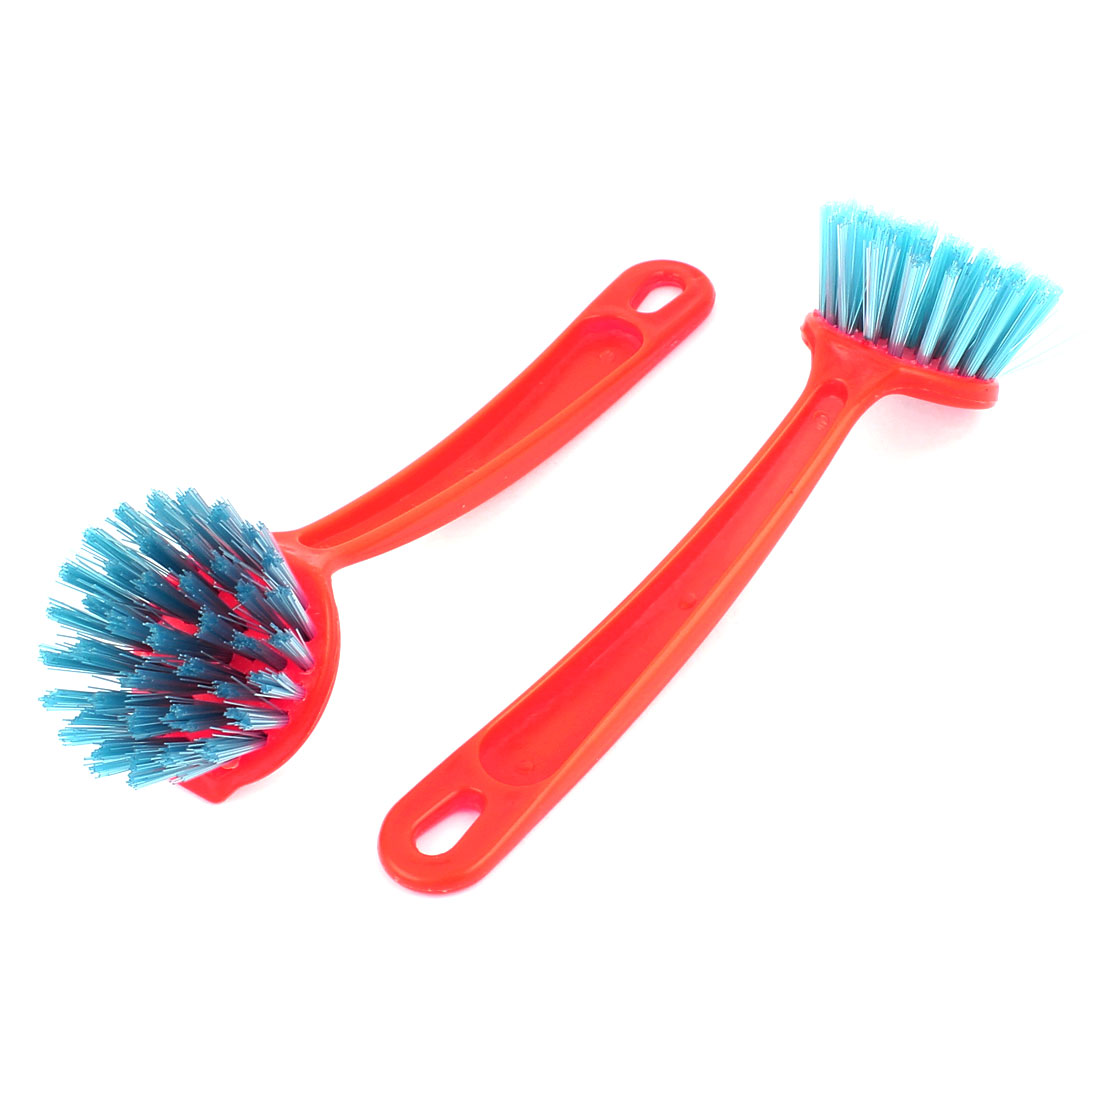 2 Pcs Kitchen Red Bristles Bowl Dish Pot Pan Cleaning Brush Scrubbers